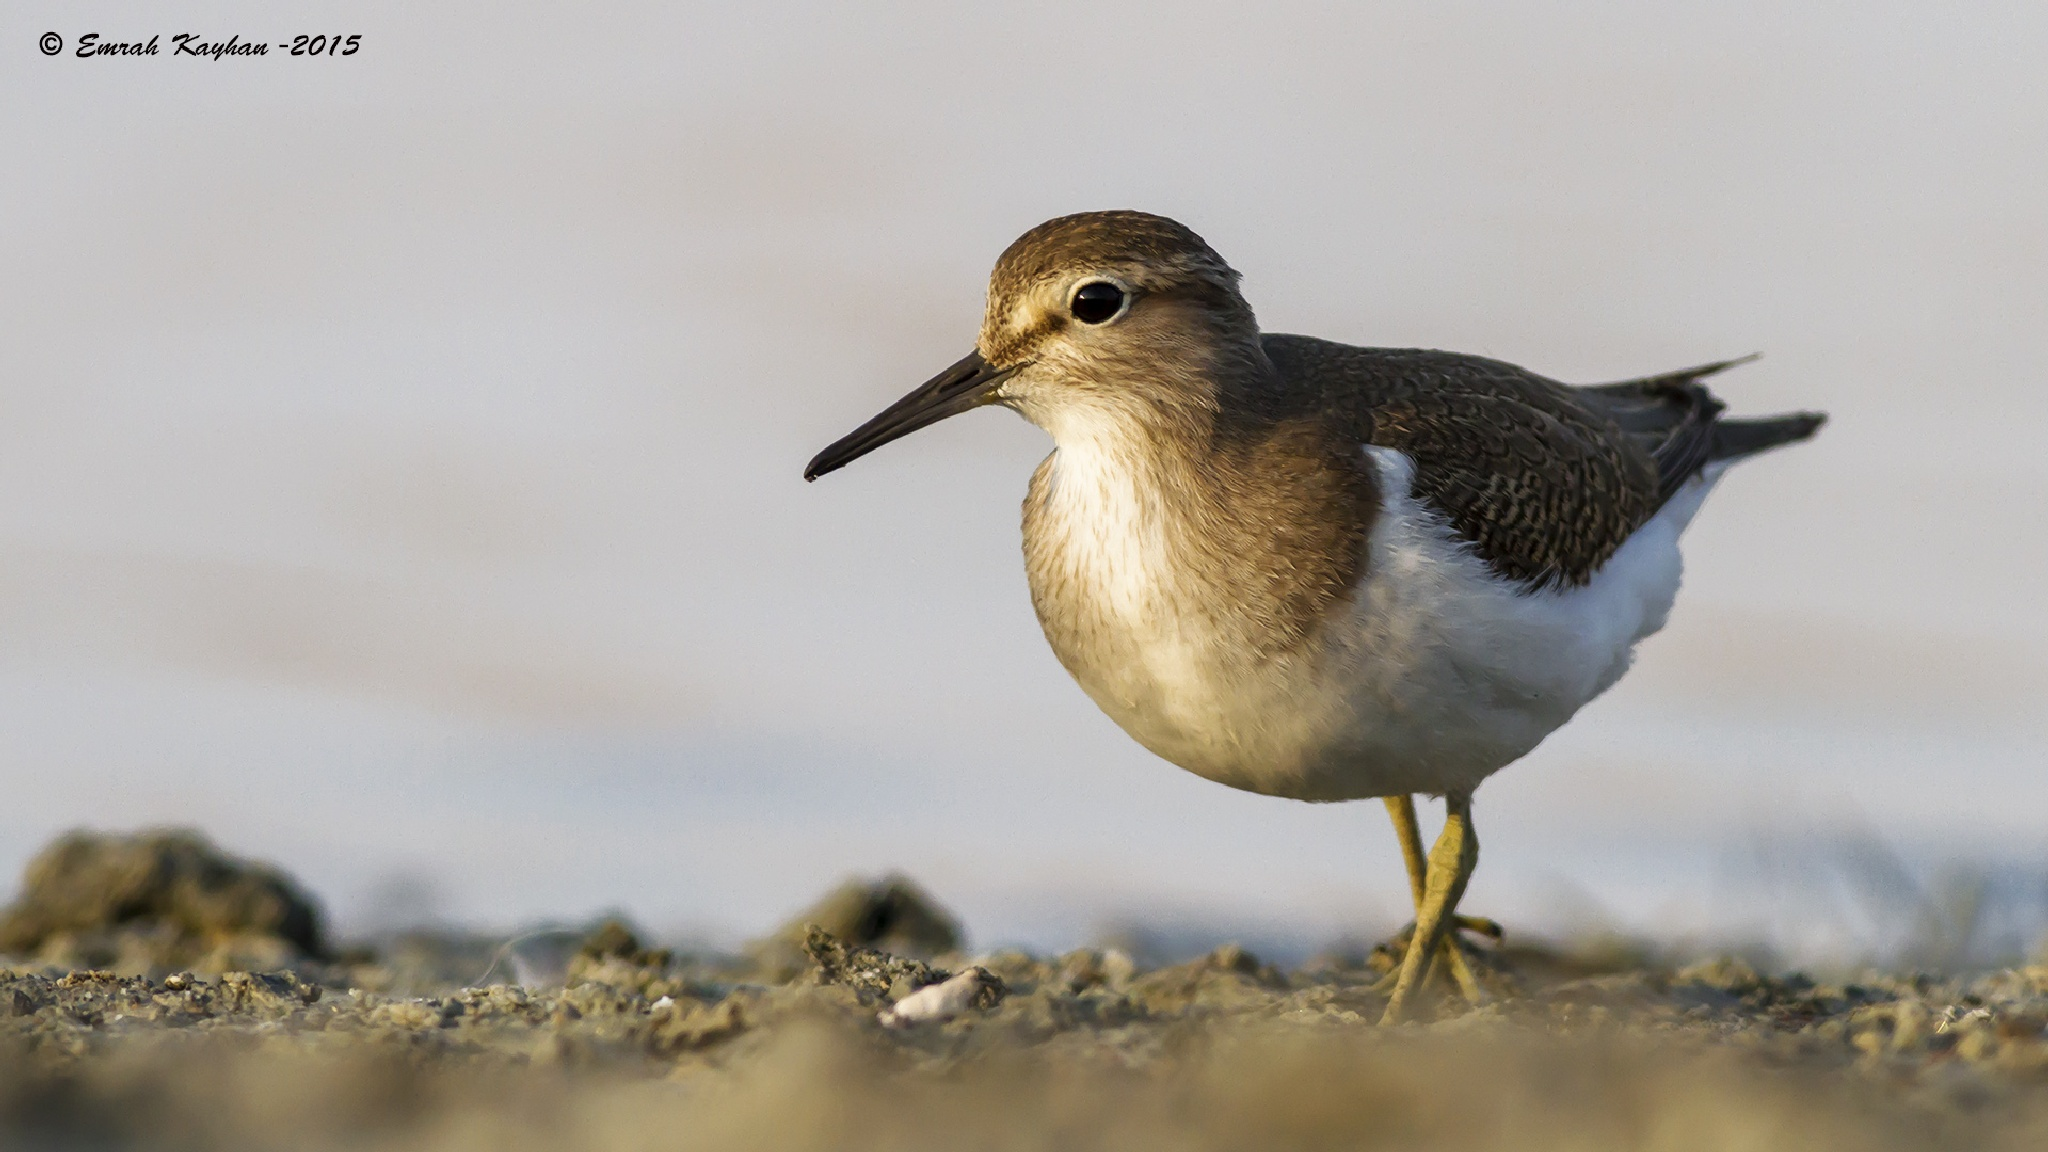 Common Sandpiper by EmrahKayhan